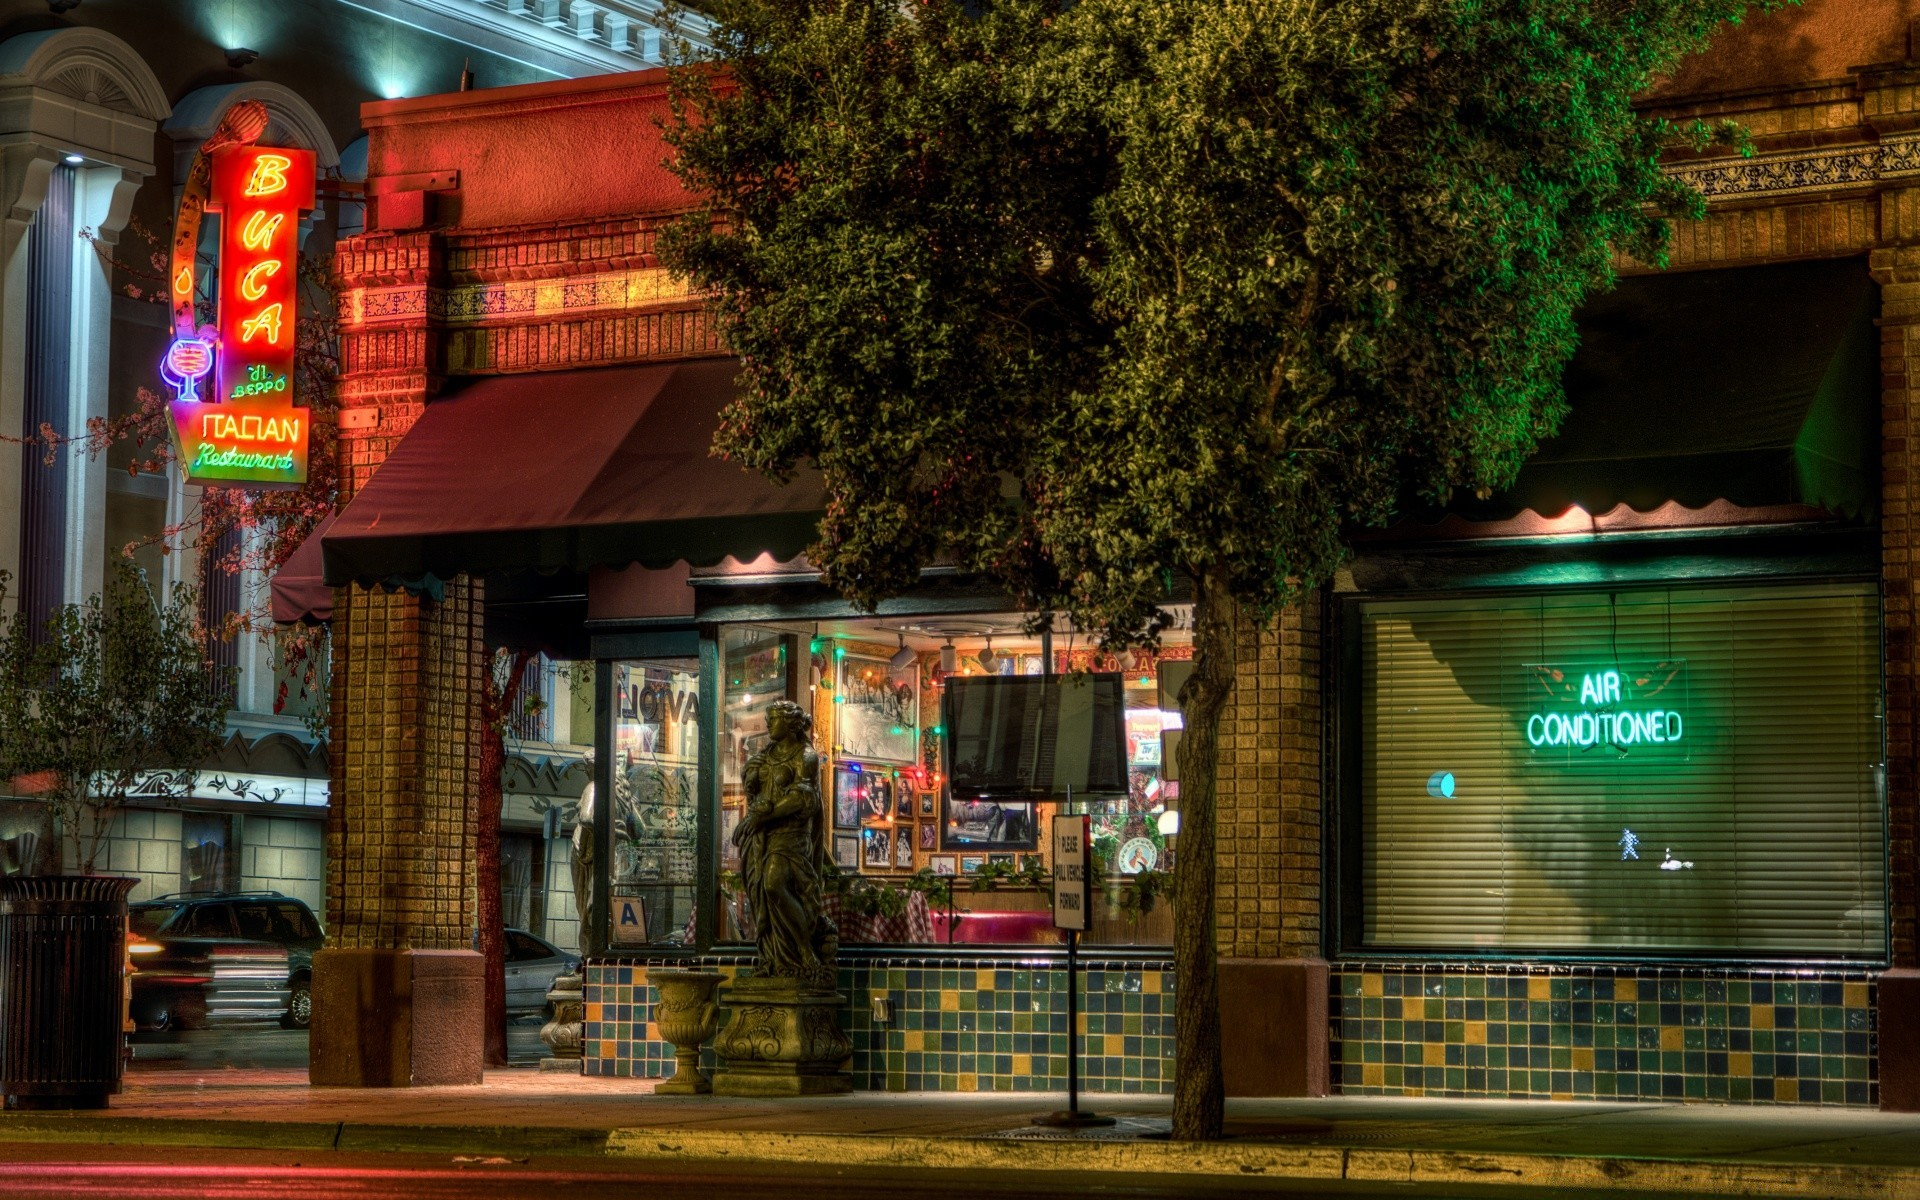 america stock street travel restaurant architecture city outdoors commerce market shopping building tourist bar hotel evening